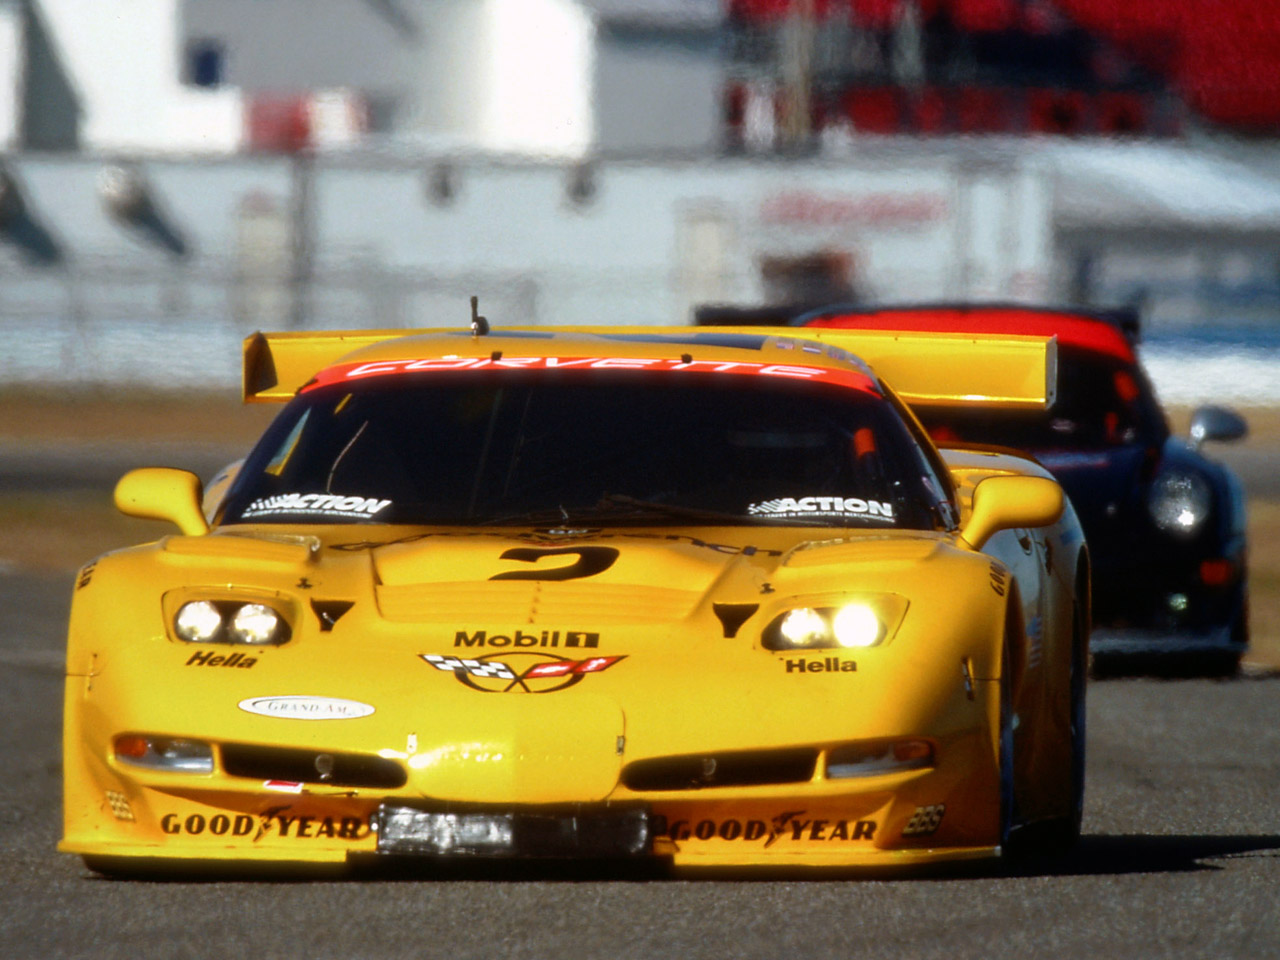 Top 10 Most Expensive Cars >> Chevrolet Corvette C5-R 2001 - Bin3aiah Cars